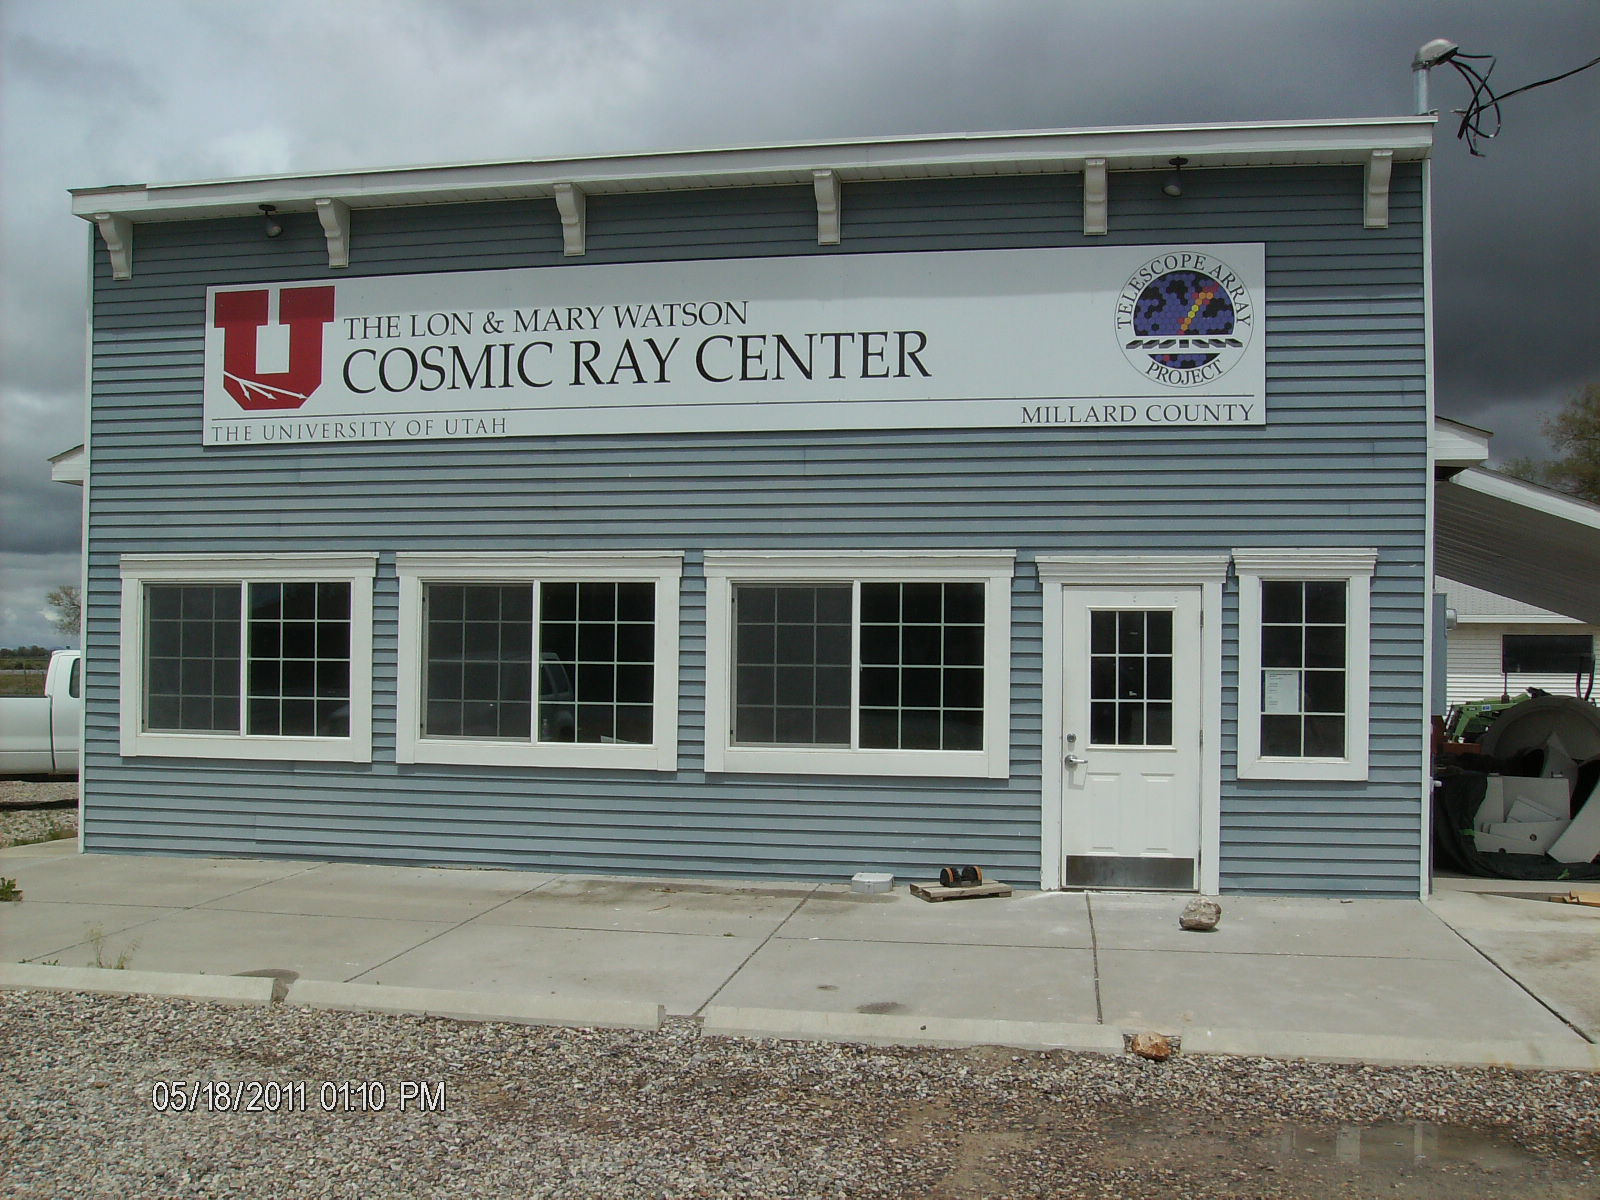 The University of Utah is opening a new Millard County Cosmic Ray Visitor Center in Delta, Utah, inside the existing Lon and Mary Watson Cosmic Ray Center, which is the hub of operations for the nearby Telescope Array, a cosmic ray observatory spread across the desert west of delta.